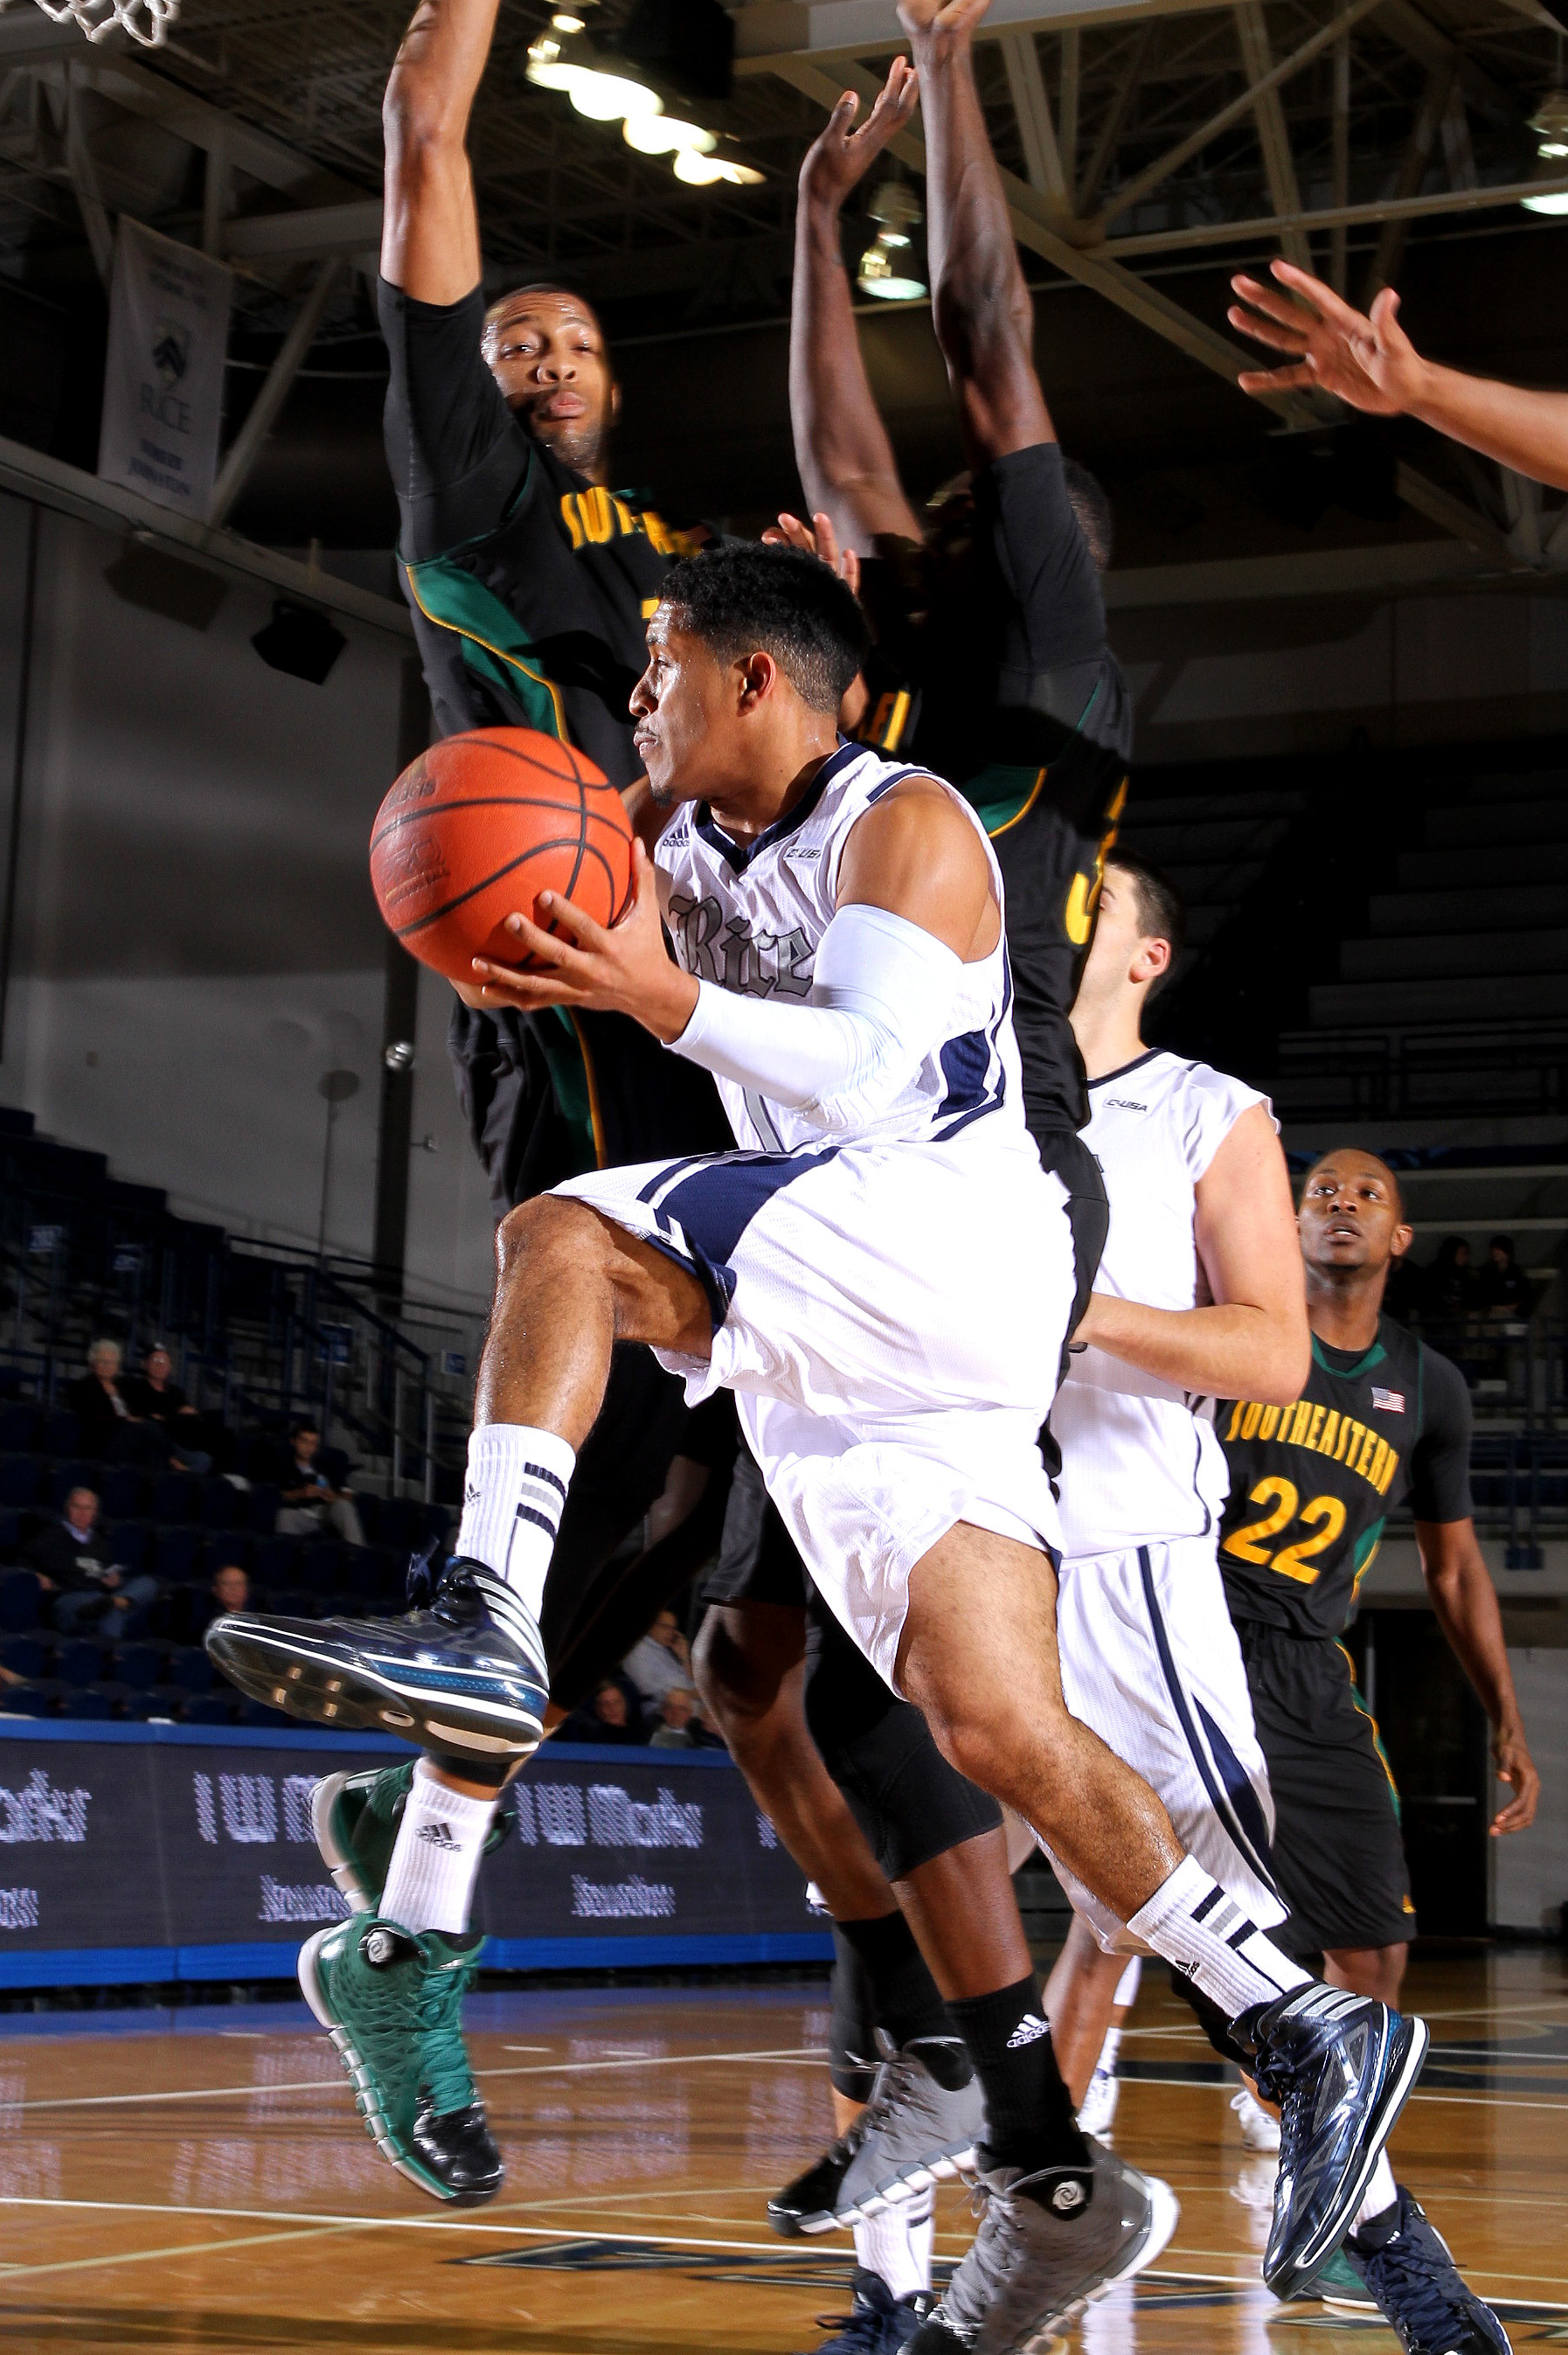 <b>Max Guercy</b> led Rice with 17 points and nine assists at Texas A&amp;M.